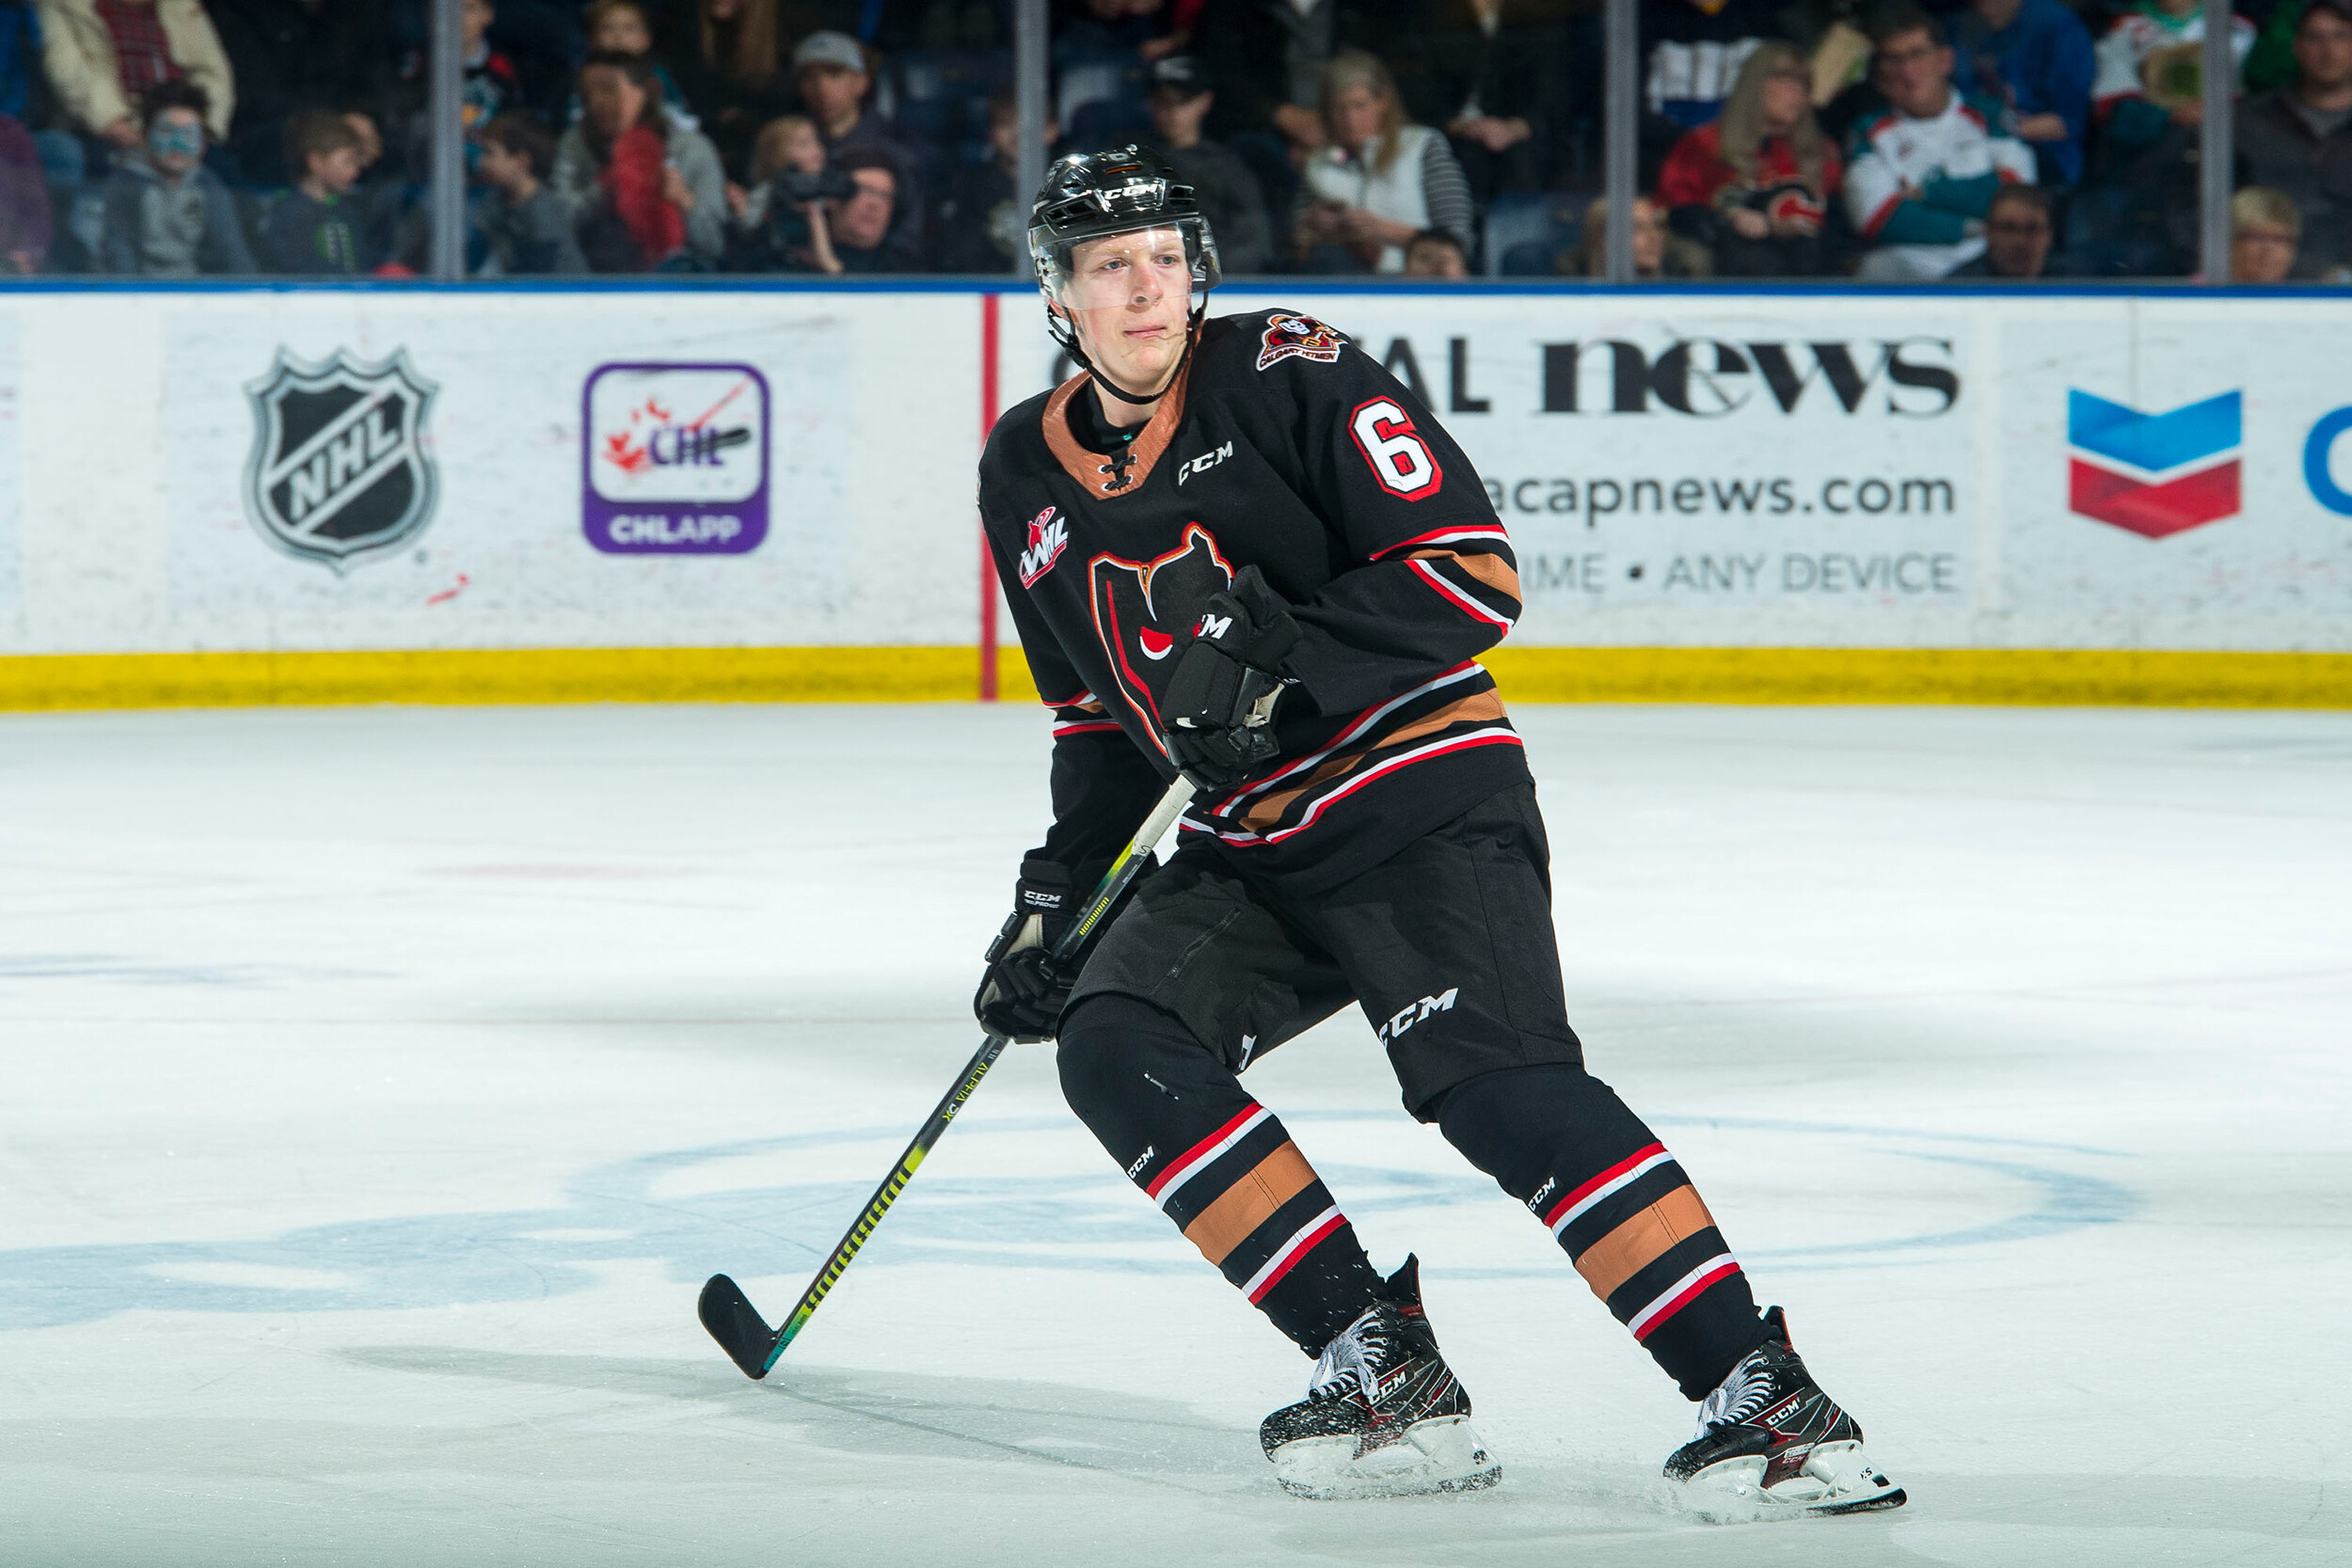 NHL prospect Luke Prokop comes out as gay, in a first for the league